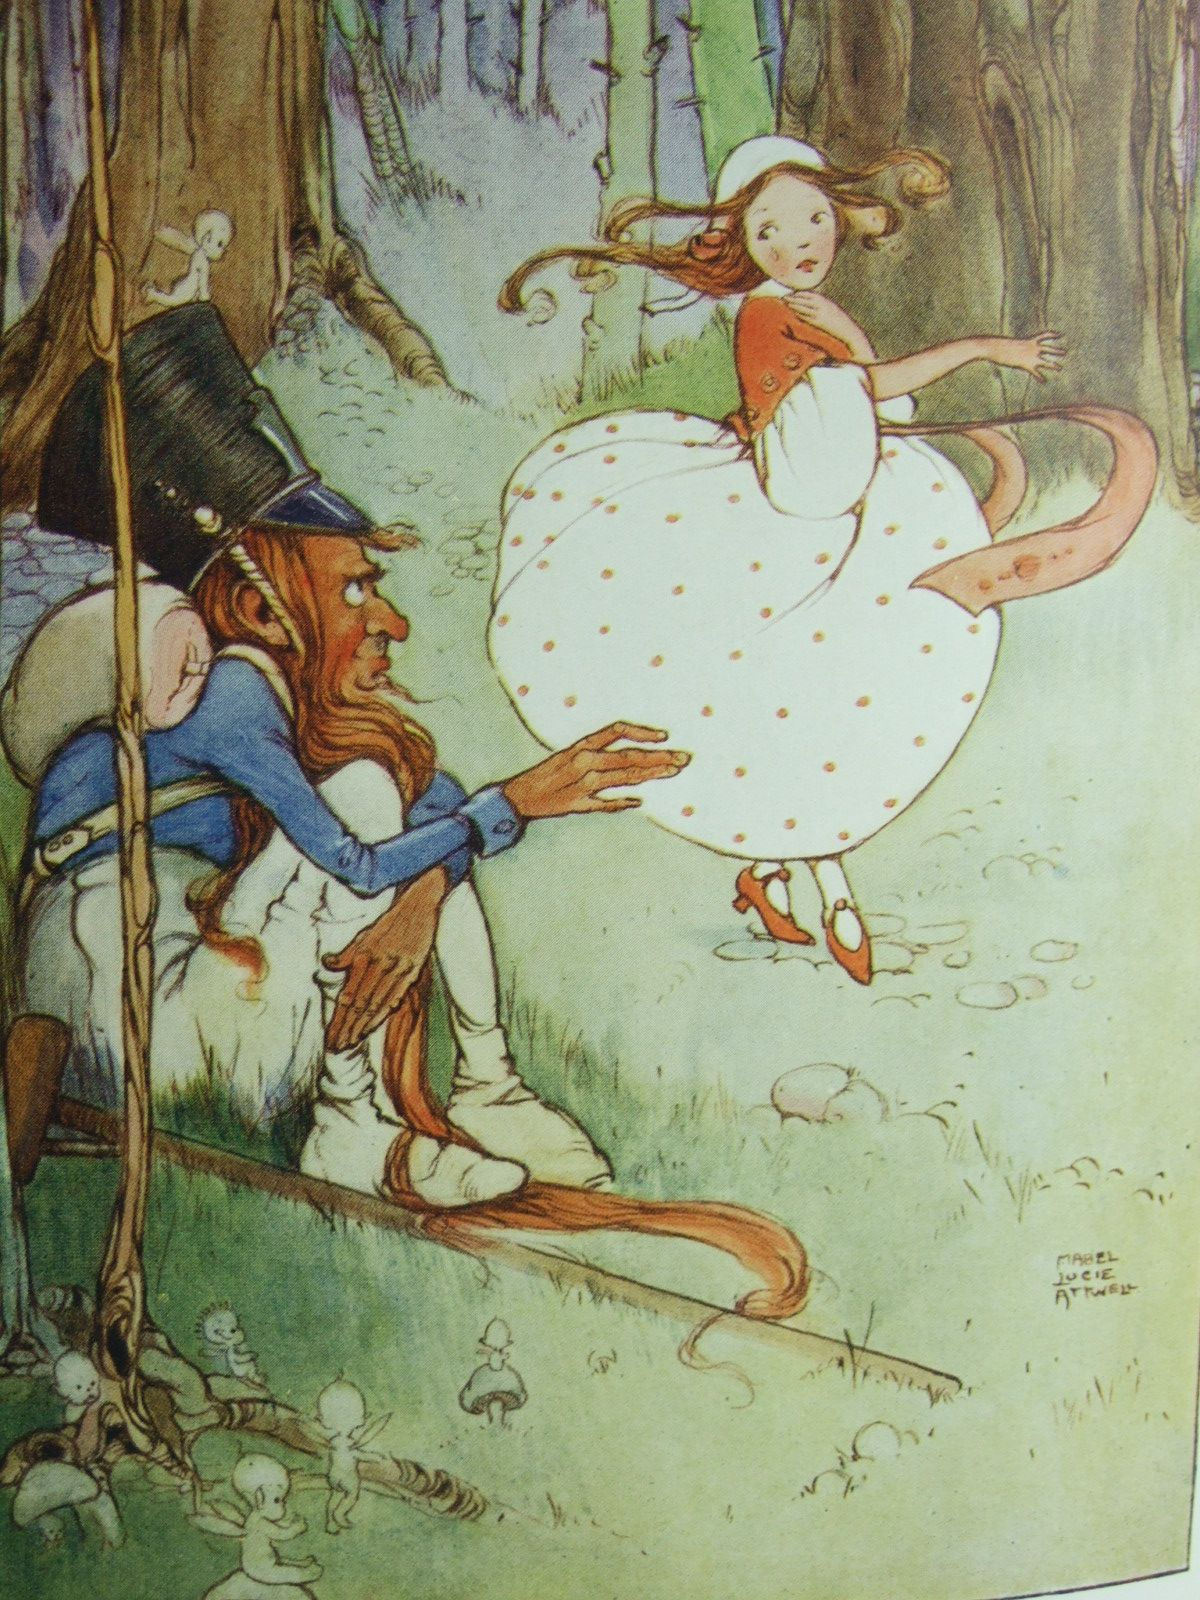 Photo of HANS ANDERSEN'S FAIRY TALES written by Andersen, Hans Christian illustrated by Attwell, Mabel Lucie published by Raphael Tuck & Sons Ltd. (STOCK CODE: 1206923)  for sale by Stella & Rose's Books